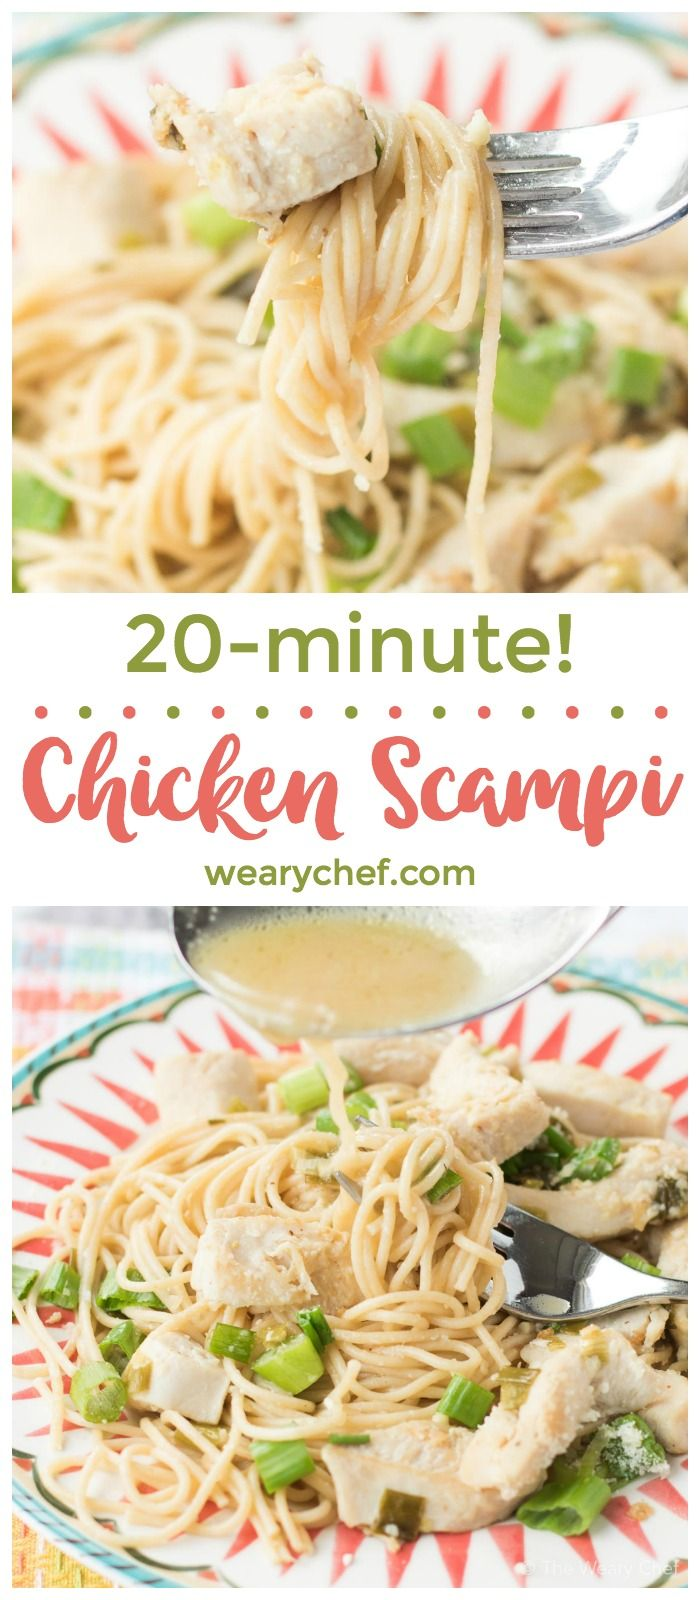 This Flavorful Quick Chicken Scampi Recipe Is Ready Only About 20